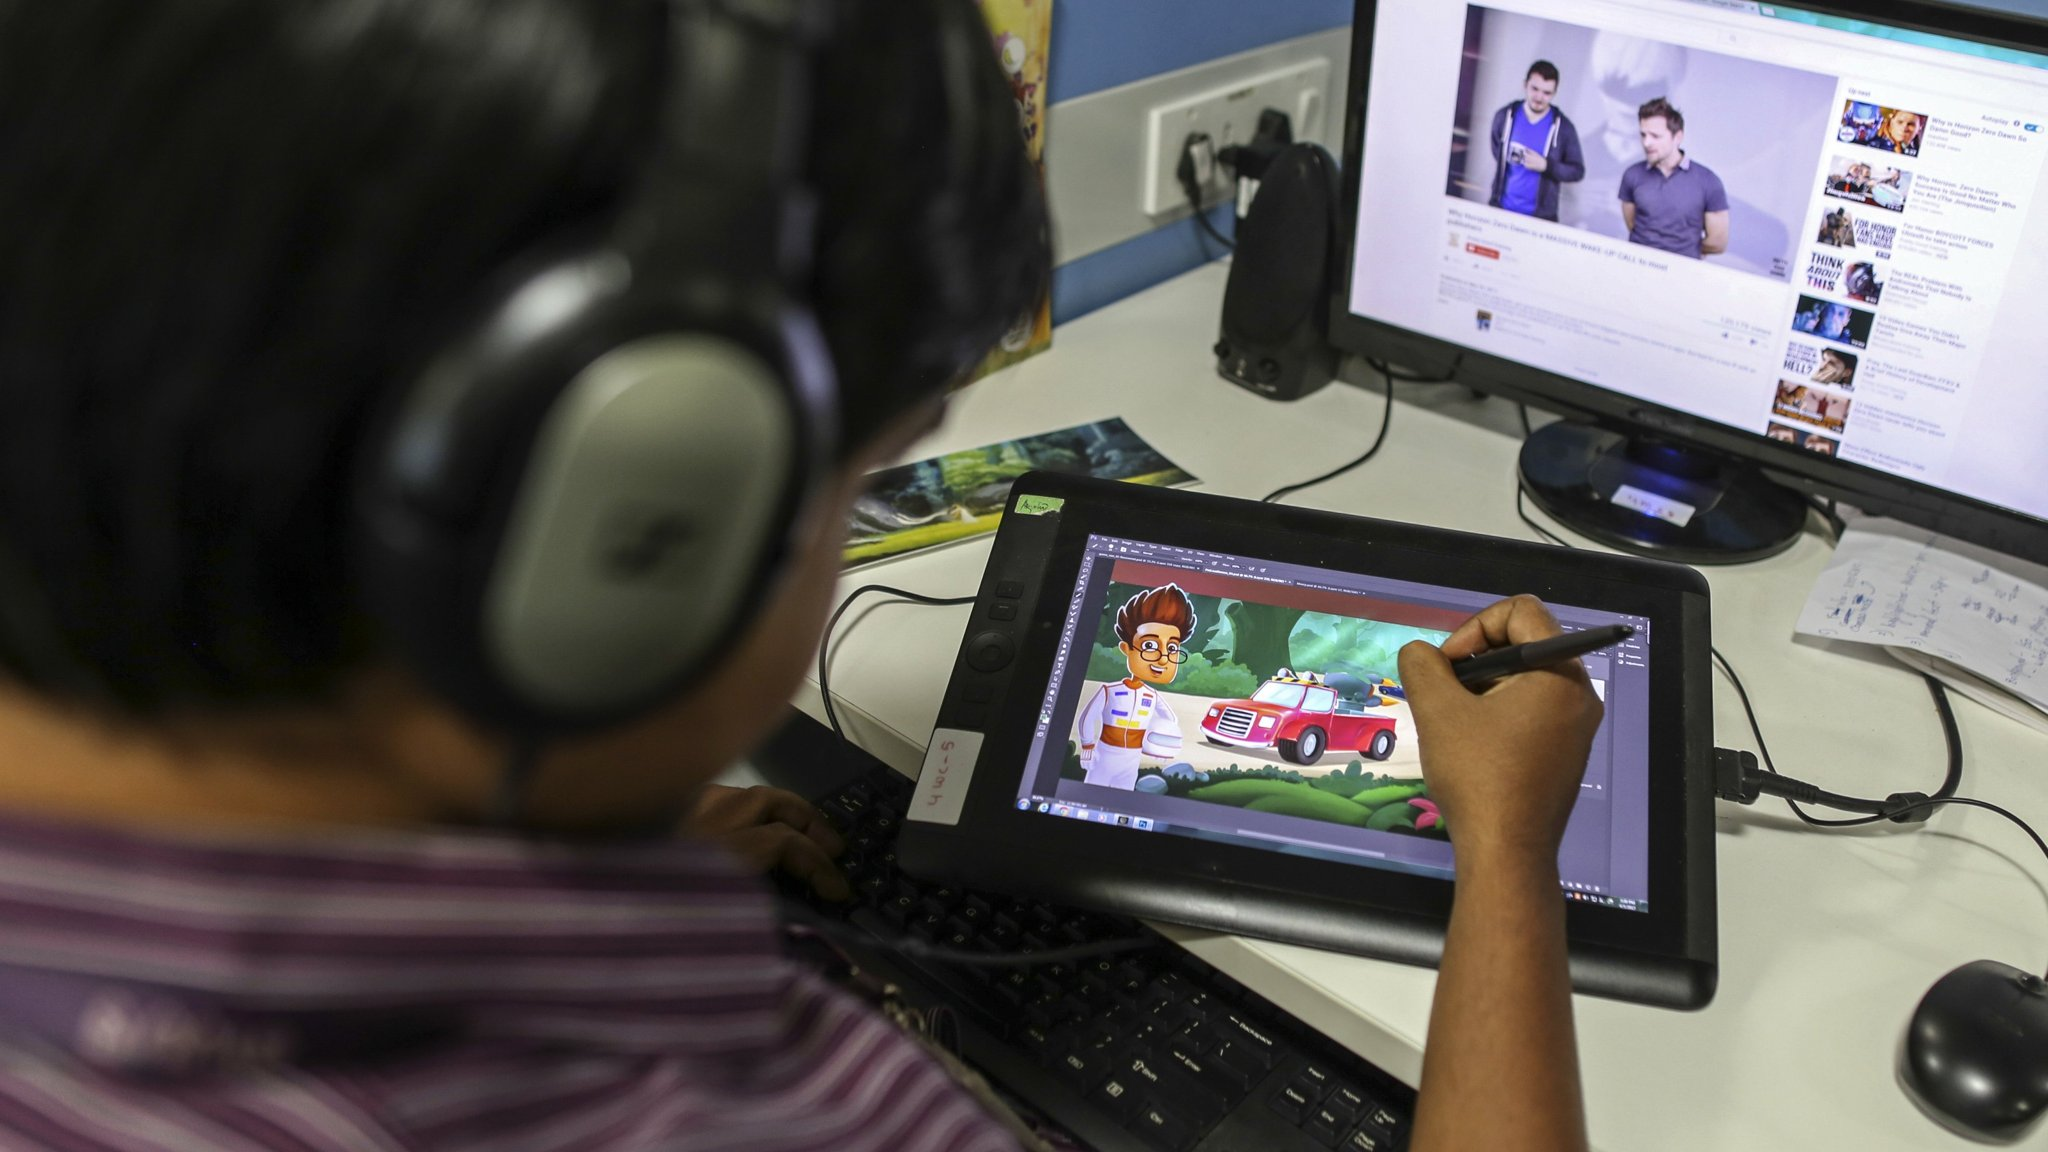 Indian students look to tech companies for education